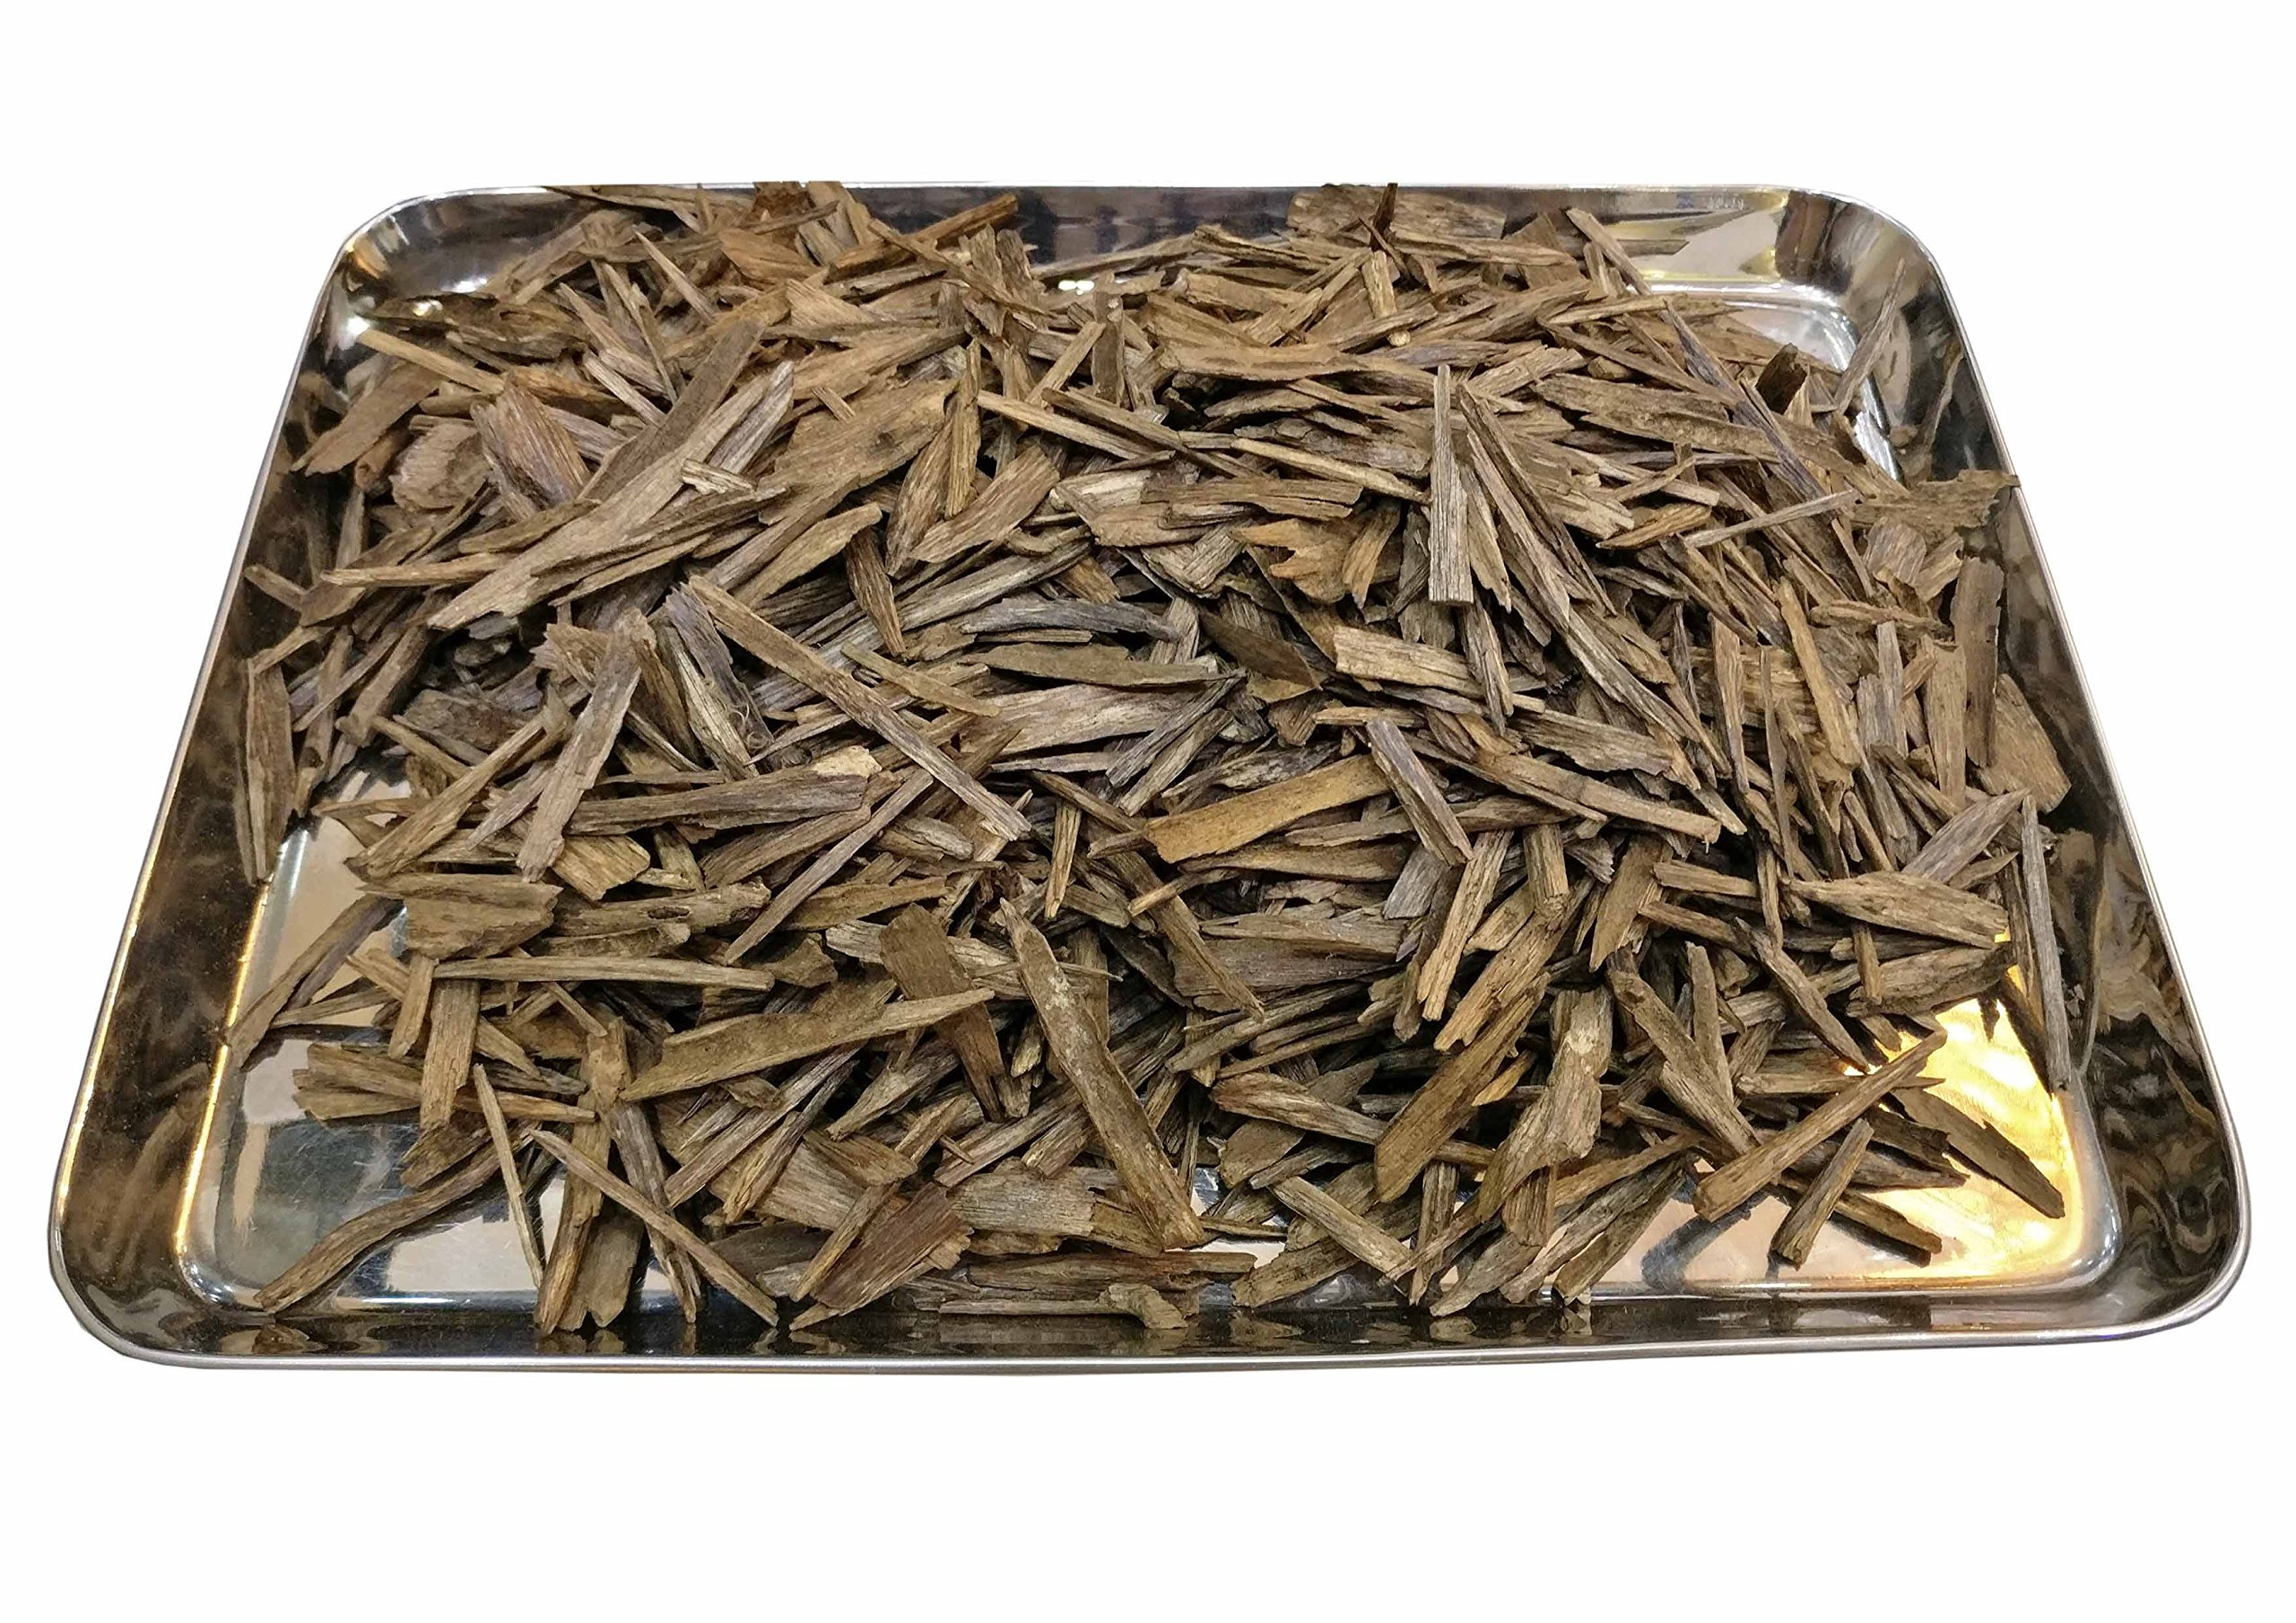 Agarwood / Oudh India 1KG Specially selected pieces.Wholesale Lot. Limited period offer.